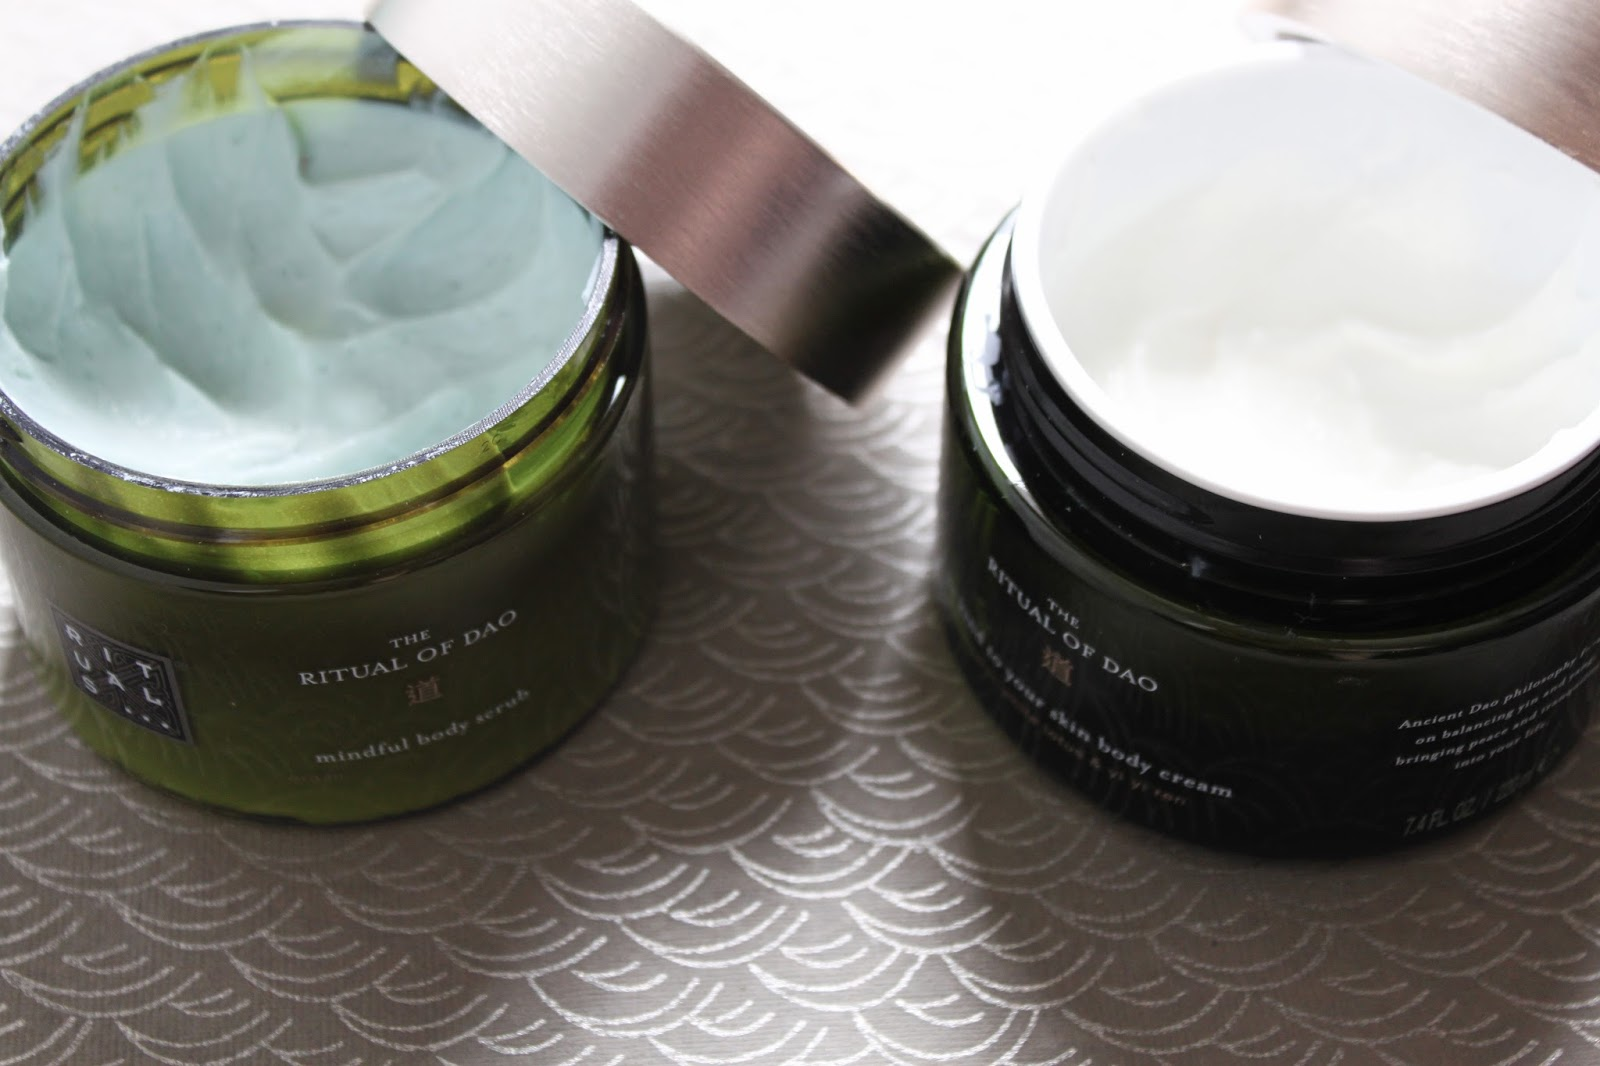 RITUALS - THE RITUAL OF DAO BODY SCRUB CREAM @DEUXAIMES